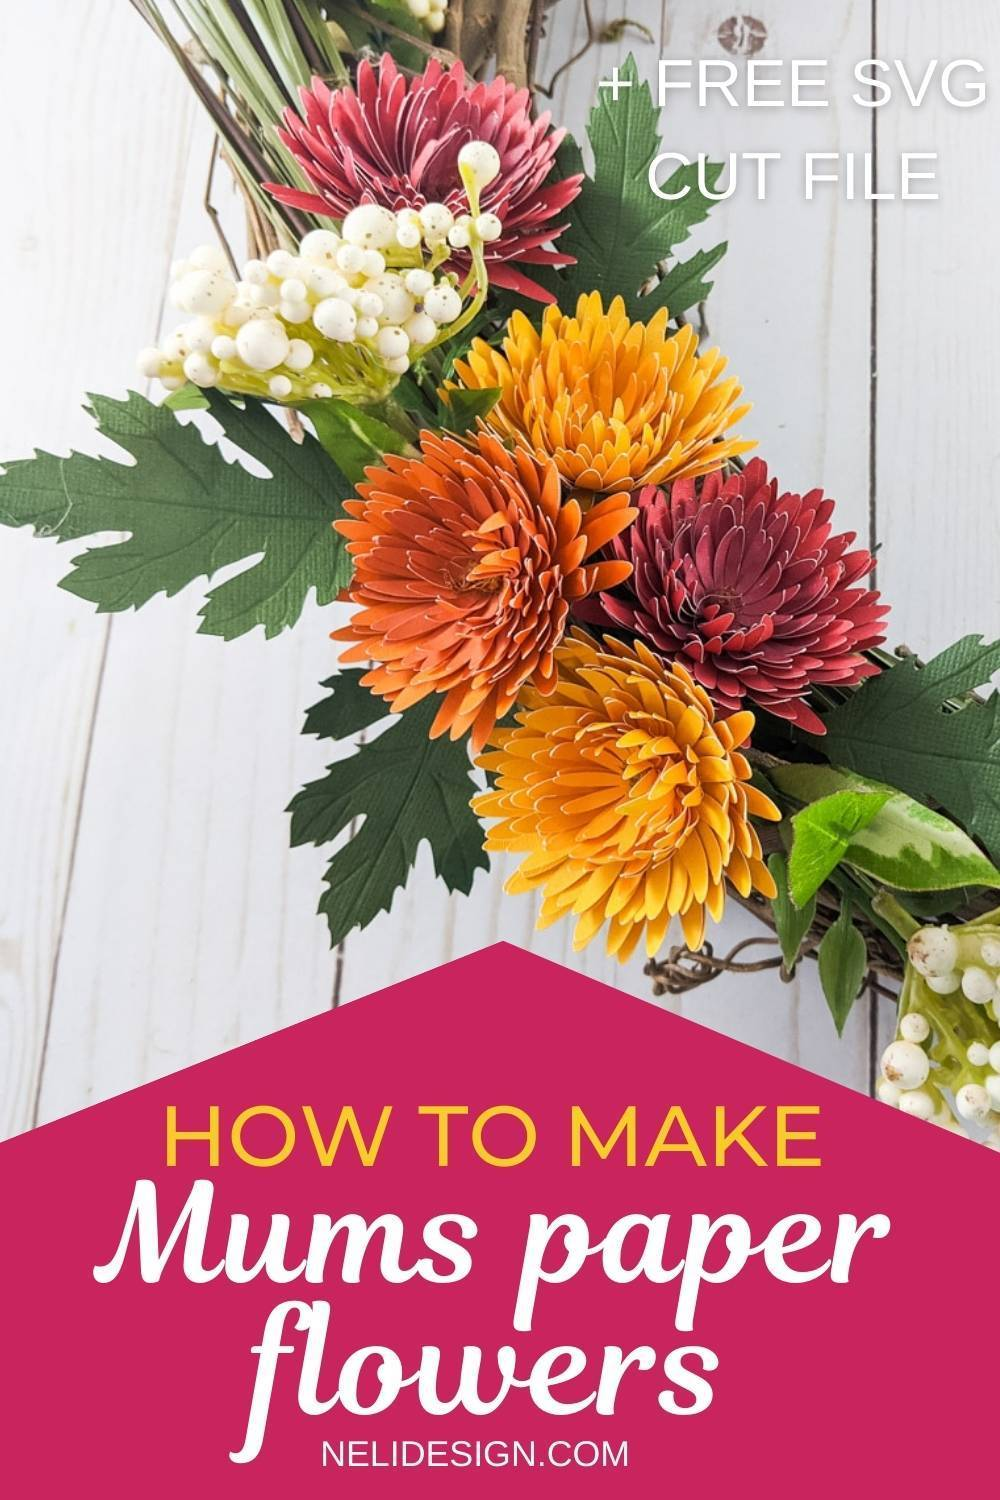 Pinterest image written How to make Mums paper flowers + free SVG cut file